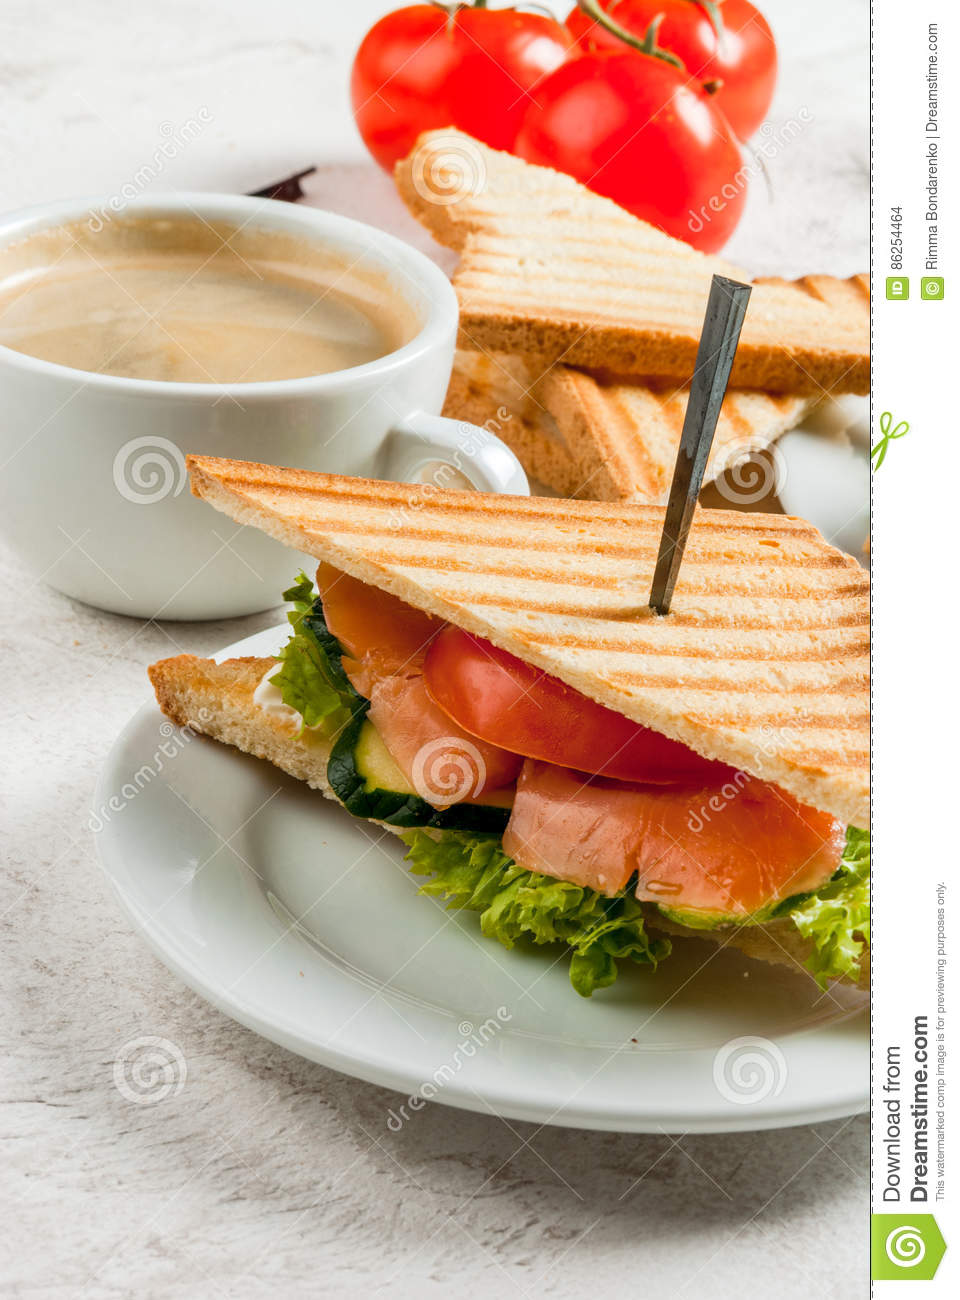 Breakfast with club sandwiches